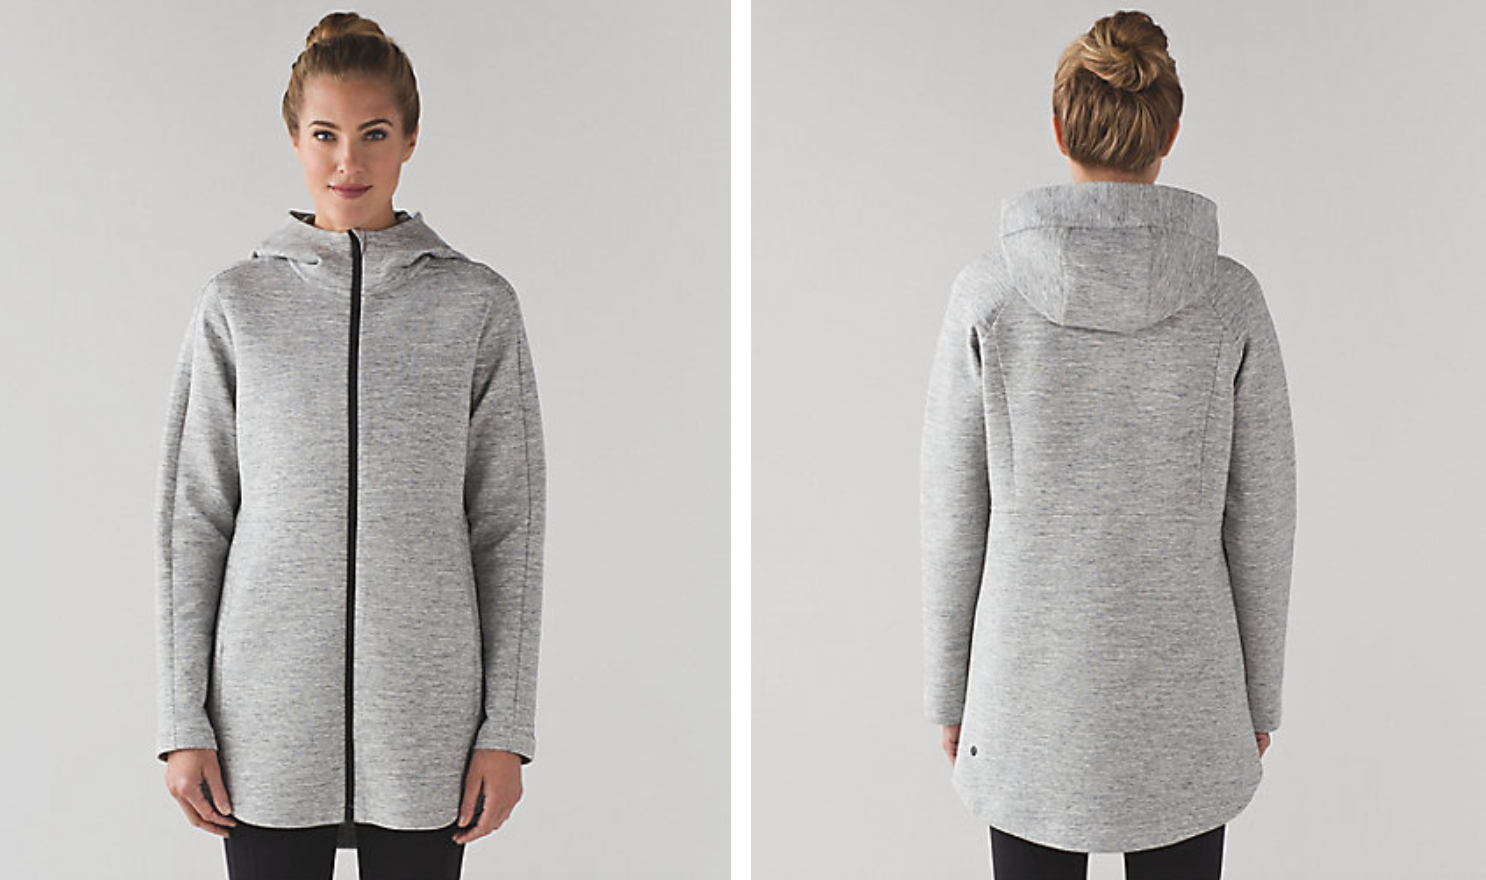 https://api.shopstyle.com/action/apiVisitRetailer?url=https%3A%2F%2Fshop.lululemon.com%2Fp%2Fwomens-outerwear%2FGoing-Places-Hooded-Jacket%2F_%2Fprod8351390%3Frcnt%3D11%26N%3D1z13ziiZ7z5%26cnt%3D58%26color%3DLW4AEKS_0001&site=www.shopstyle.ca&pid=uid6784-25288972-7